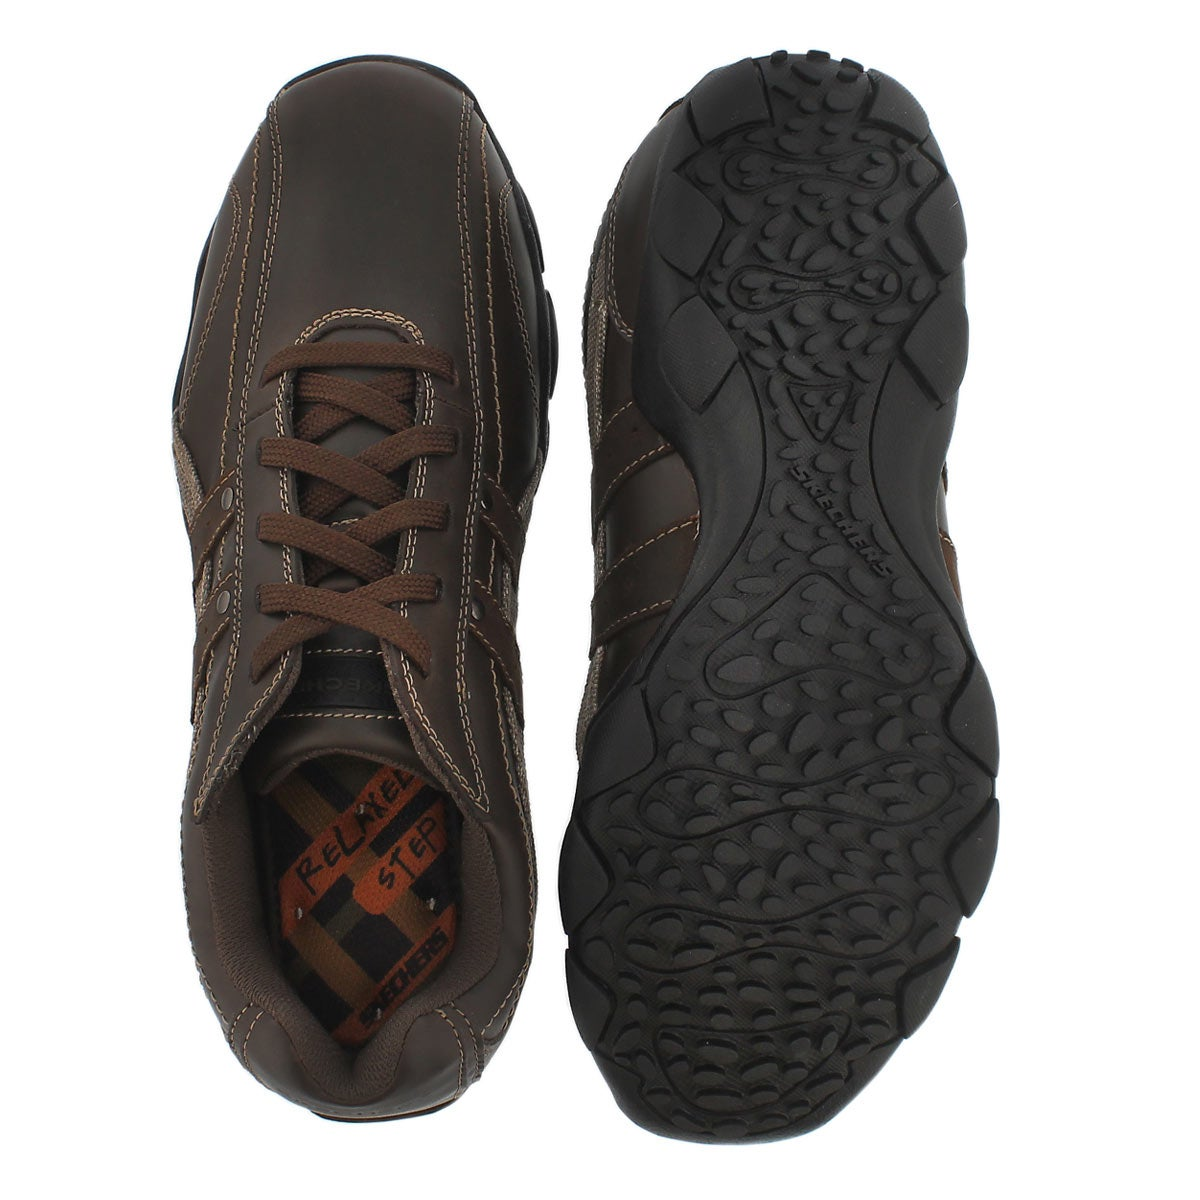 Mns Blake brown leather  lace up